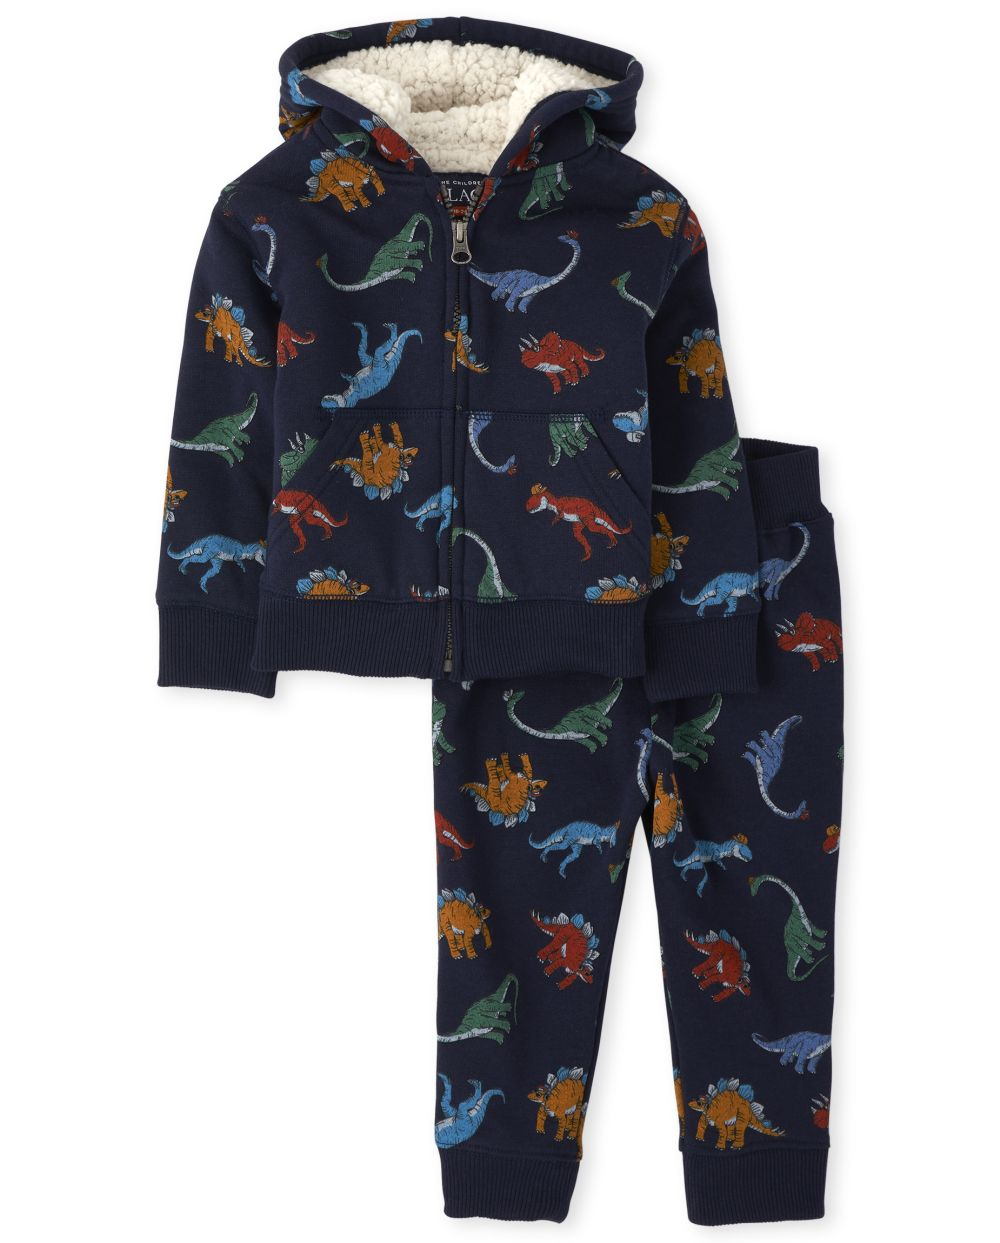 Baby And Toddler Boys Dino Sherpa Outfit Set